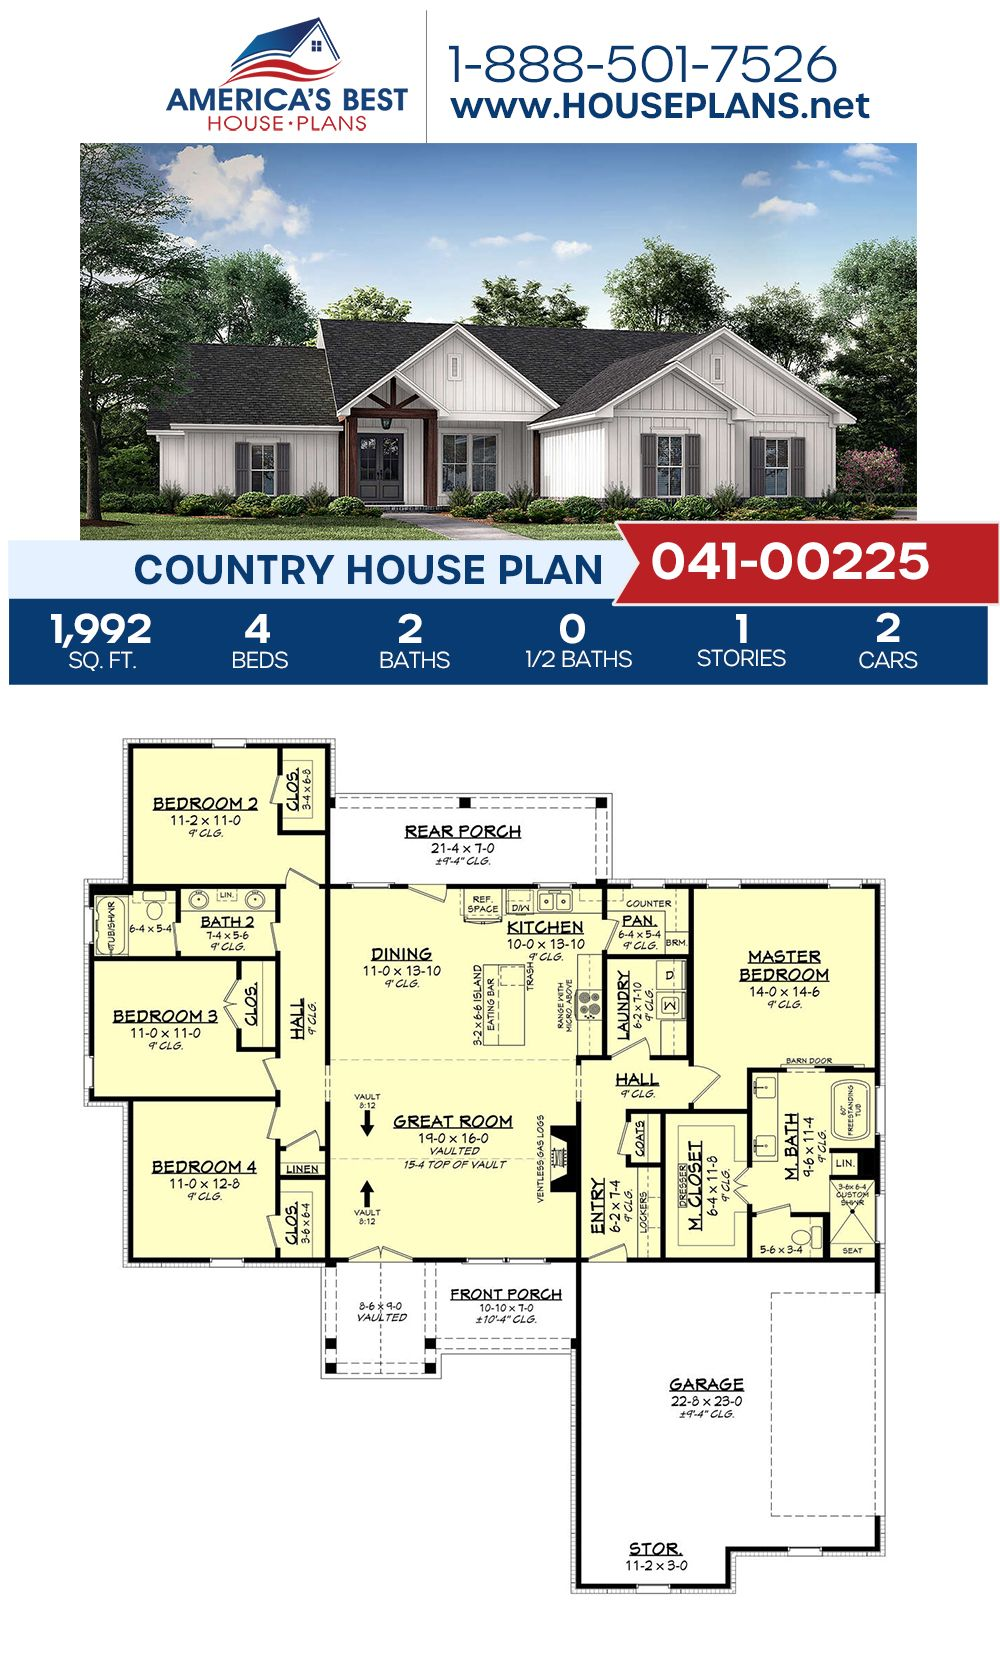 House Plan 041 00225 Country Plan 1 992 Square Feet 4 Bedrooms 2 Bathrooms In 2020 Open Floor House Plans Country House Plan Single Level House Plans